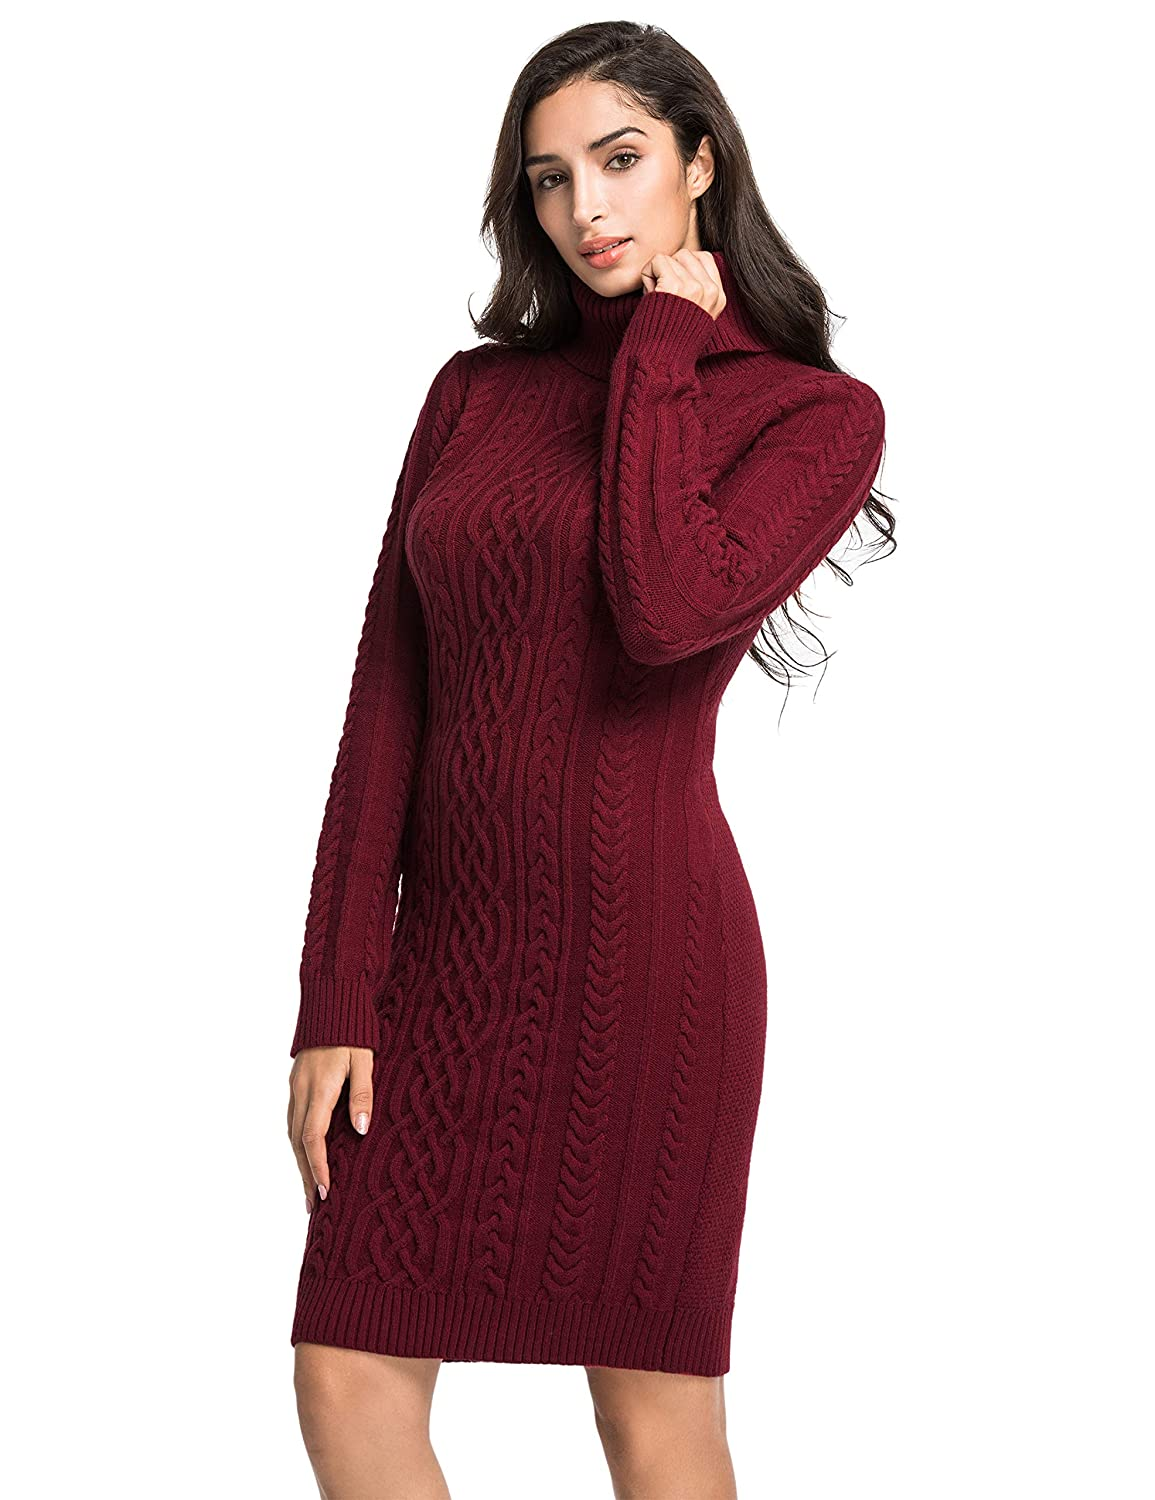 PrettyGuide Women s Sweater Dress Cable Knit Slim Fit Turtleneck Sweater at  Amazon Women s Clothing store  b9ea0ba1d